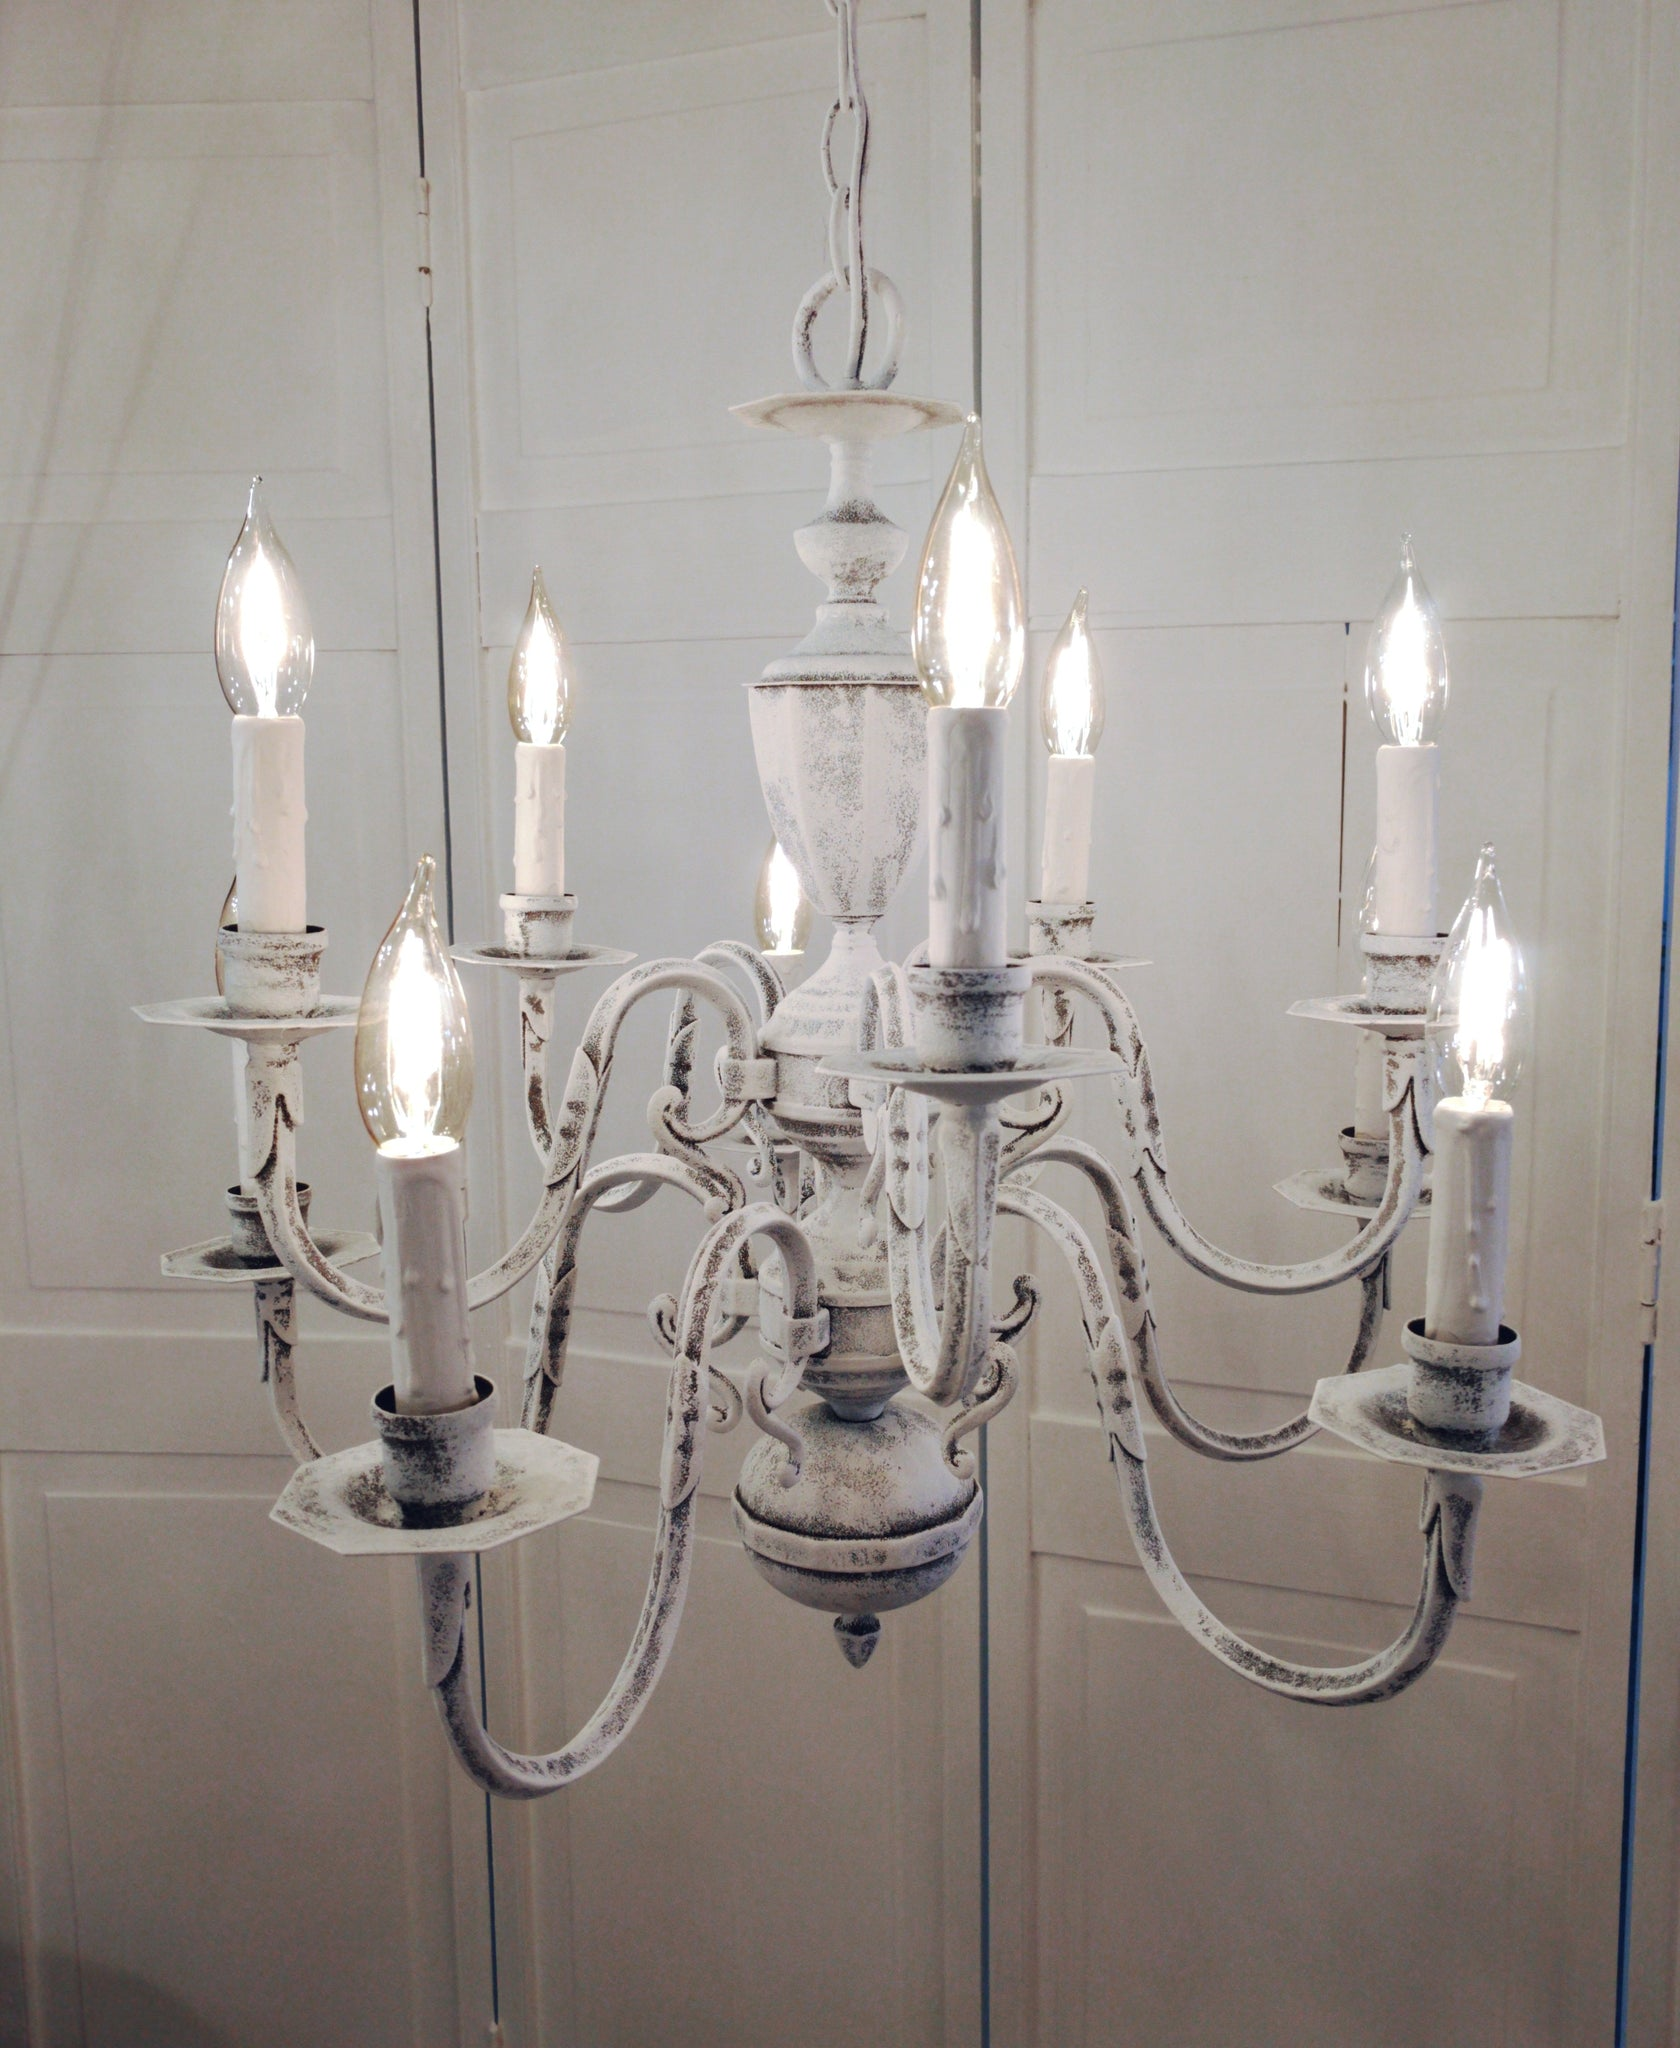 Chandelier lighting shabby chic distressed whitewashed old world chandelier lighting shabby chic distressed whitewashed old world aloadofball Choice Image